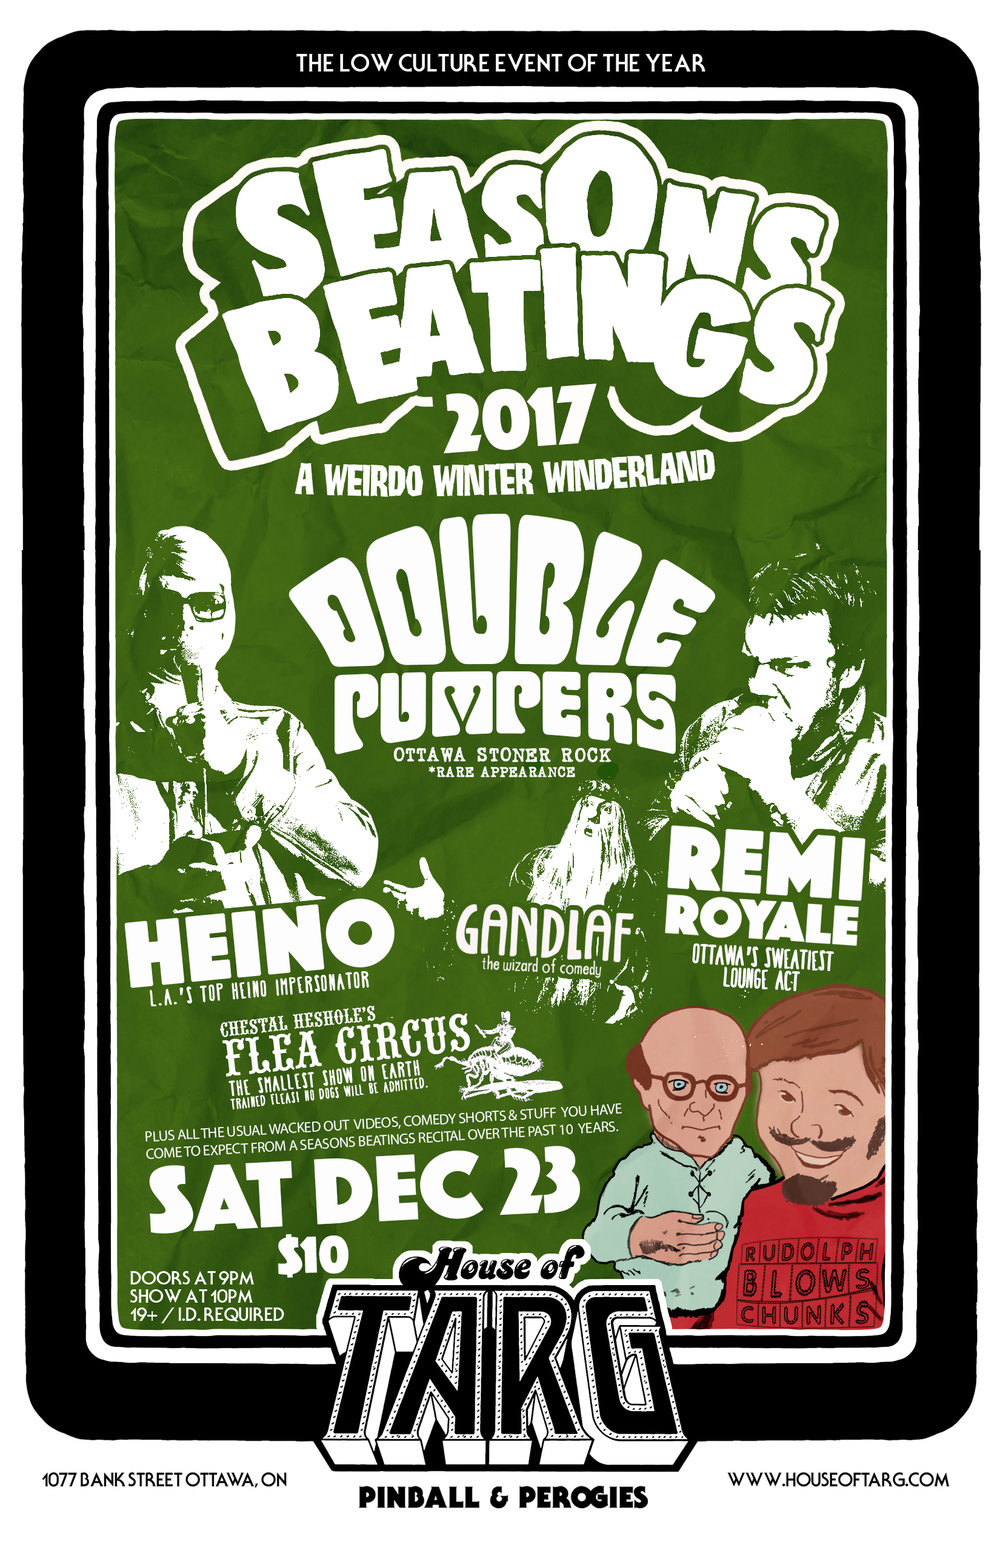 Sat Dec 23   SEASONS BEATINGS   NITE 2:  A Weirdo Winter Wonderland  Things will get weird at this holiday themed variety show. Everything from amazing Stoner rock by Ottawa's Lords of heavy Double Pumpers to a Heino Impersonator to Interpretive dancers (comedy) to the sweatiest crooning in town by Remi Royale.  m  ore details here